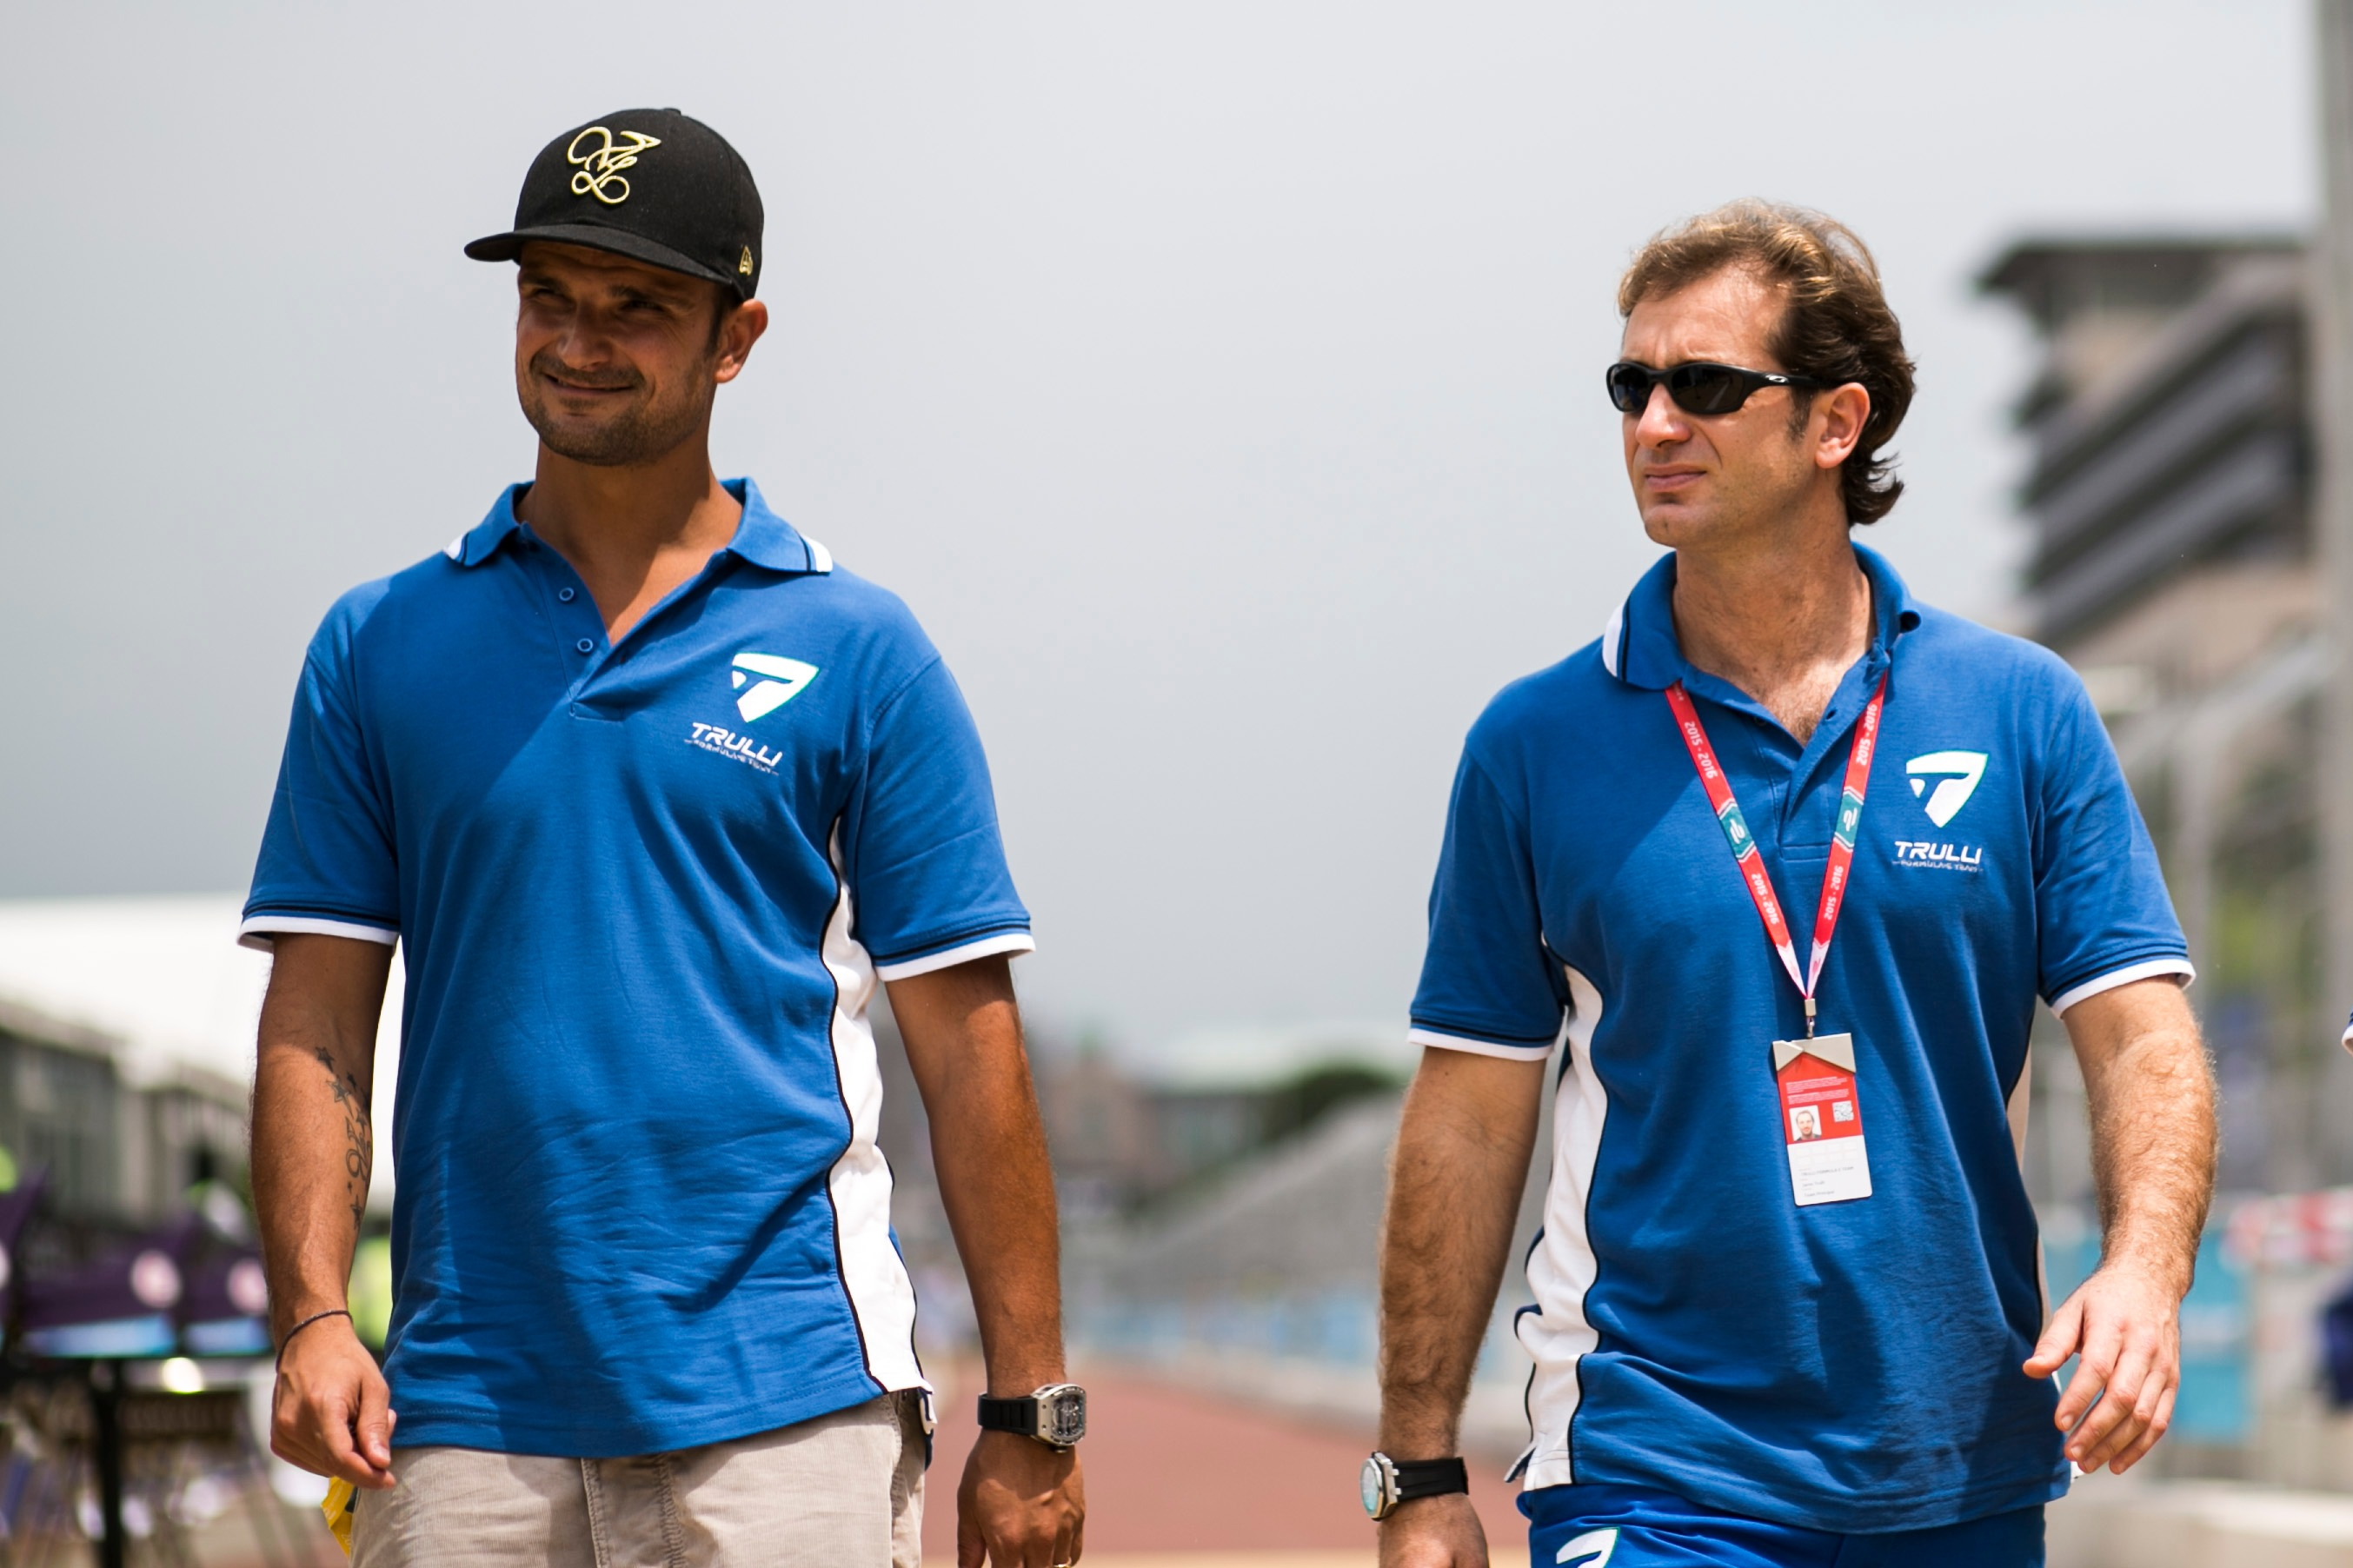 Trulli made it to Putrajaya, but the car failed scrutineering and it proved the final straw for the team